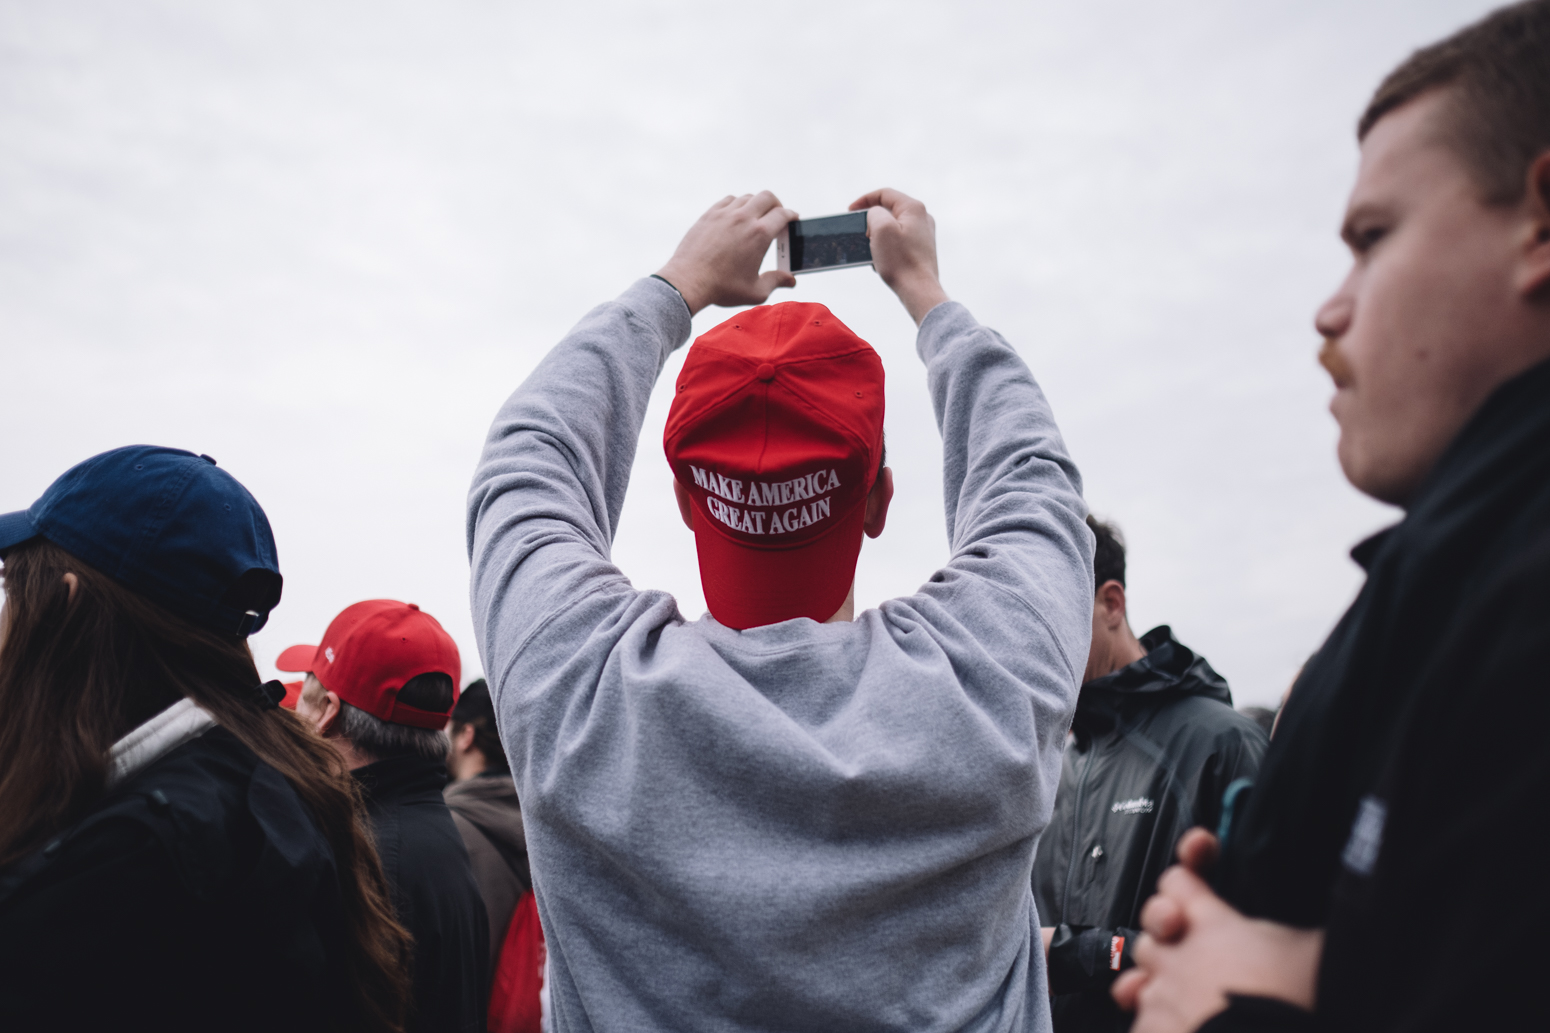 People gather on the National Mall Jan 19th, 2017 for the Inaguration of Donald Trump.